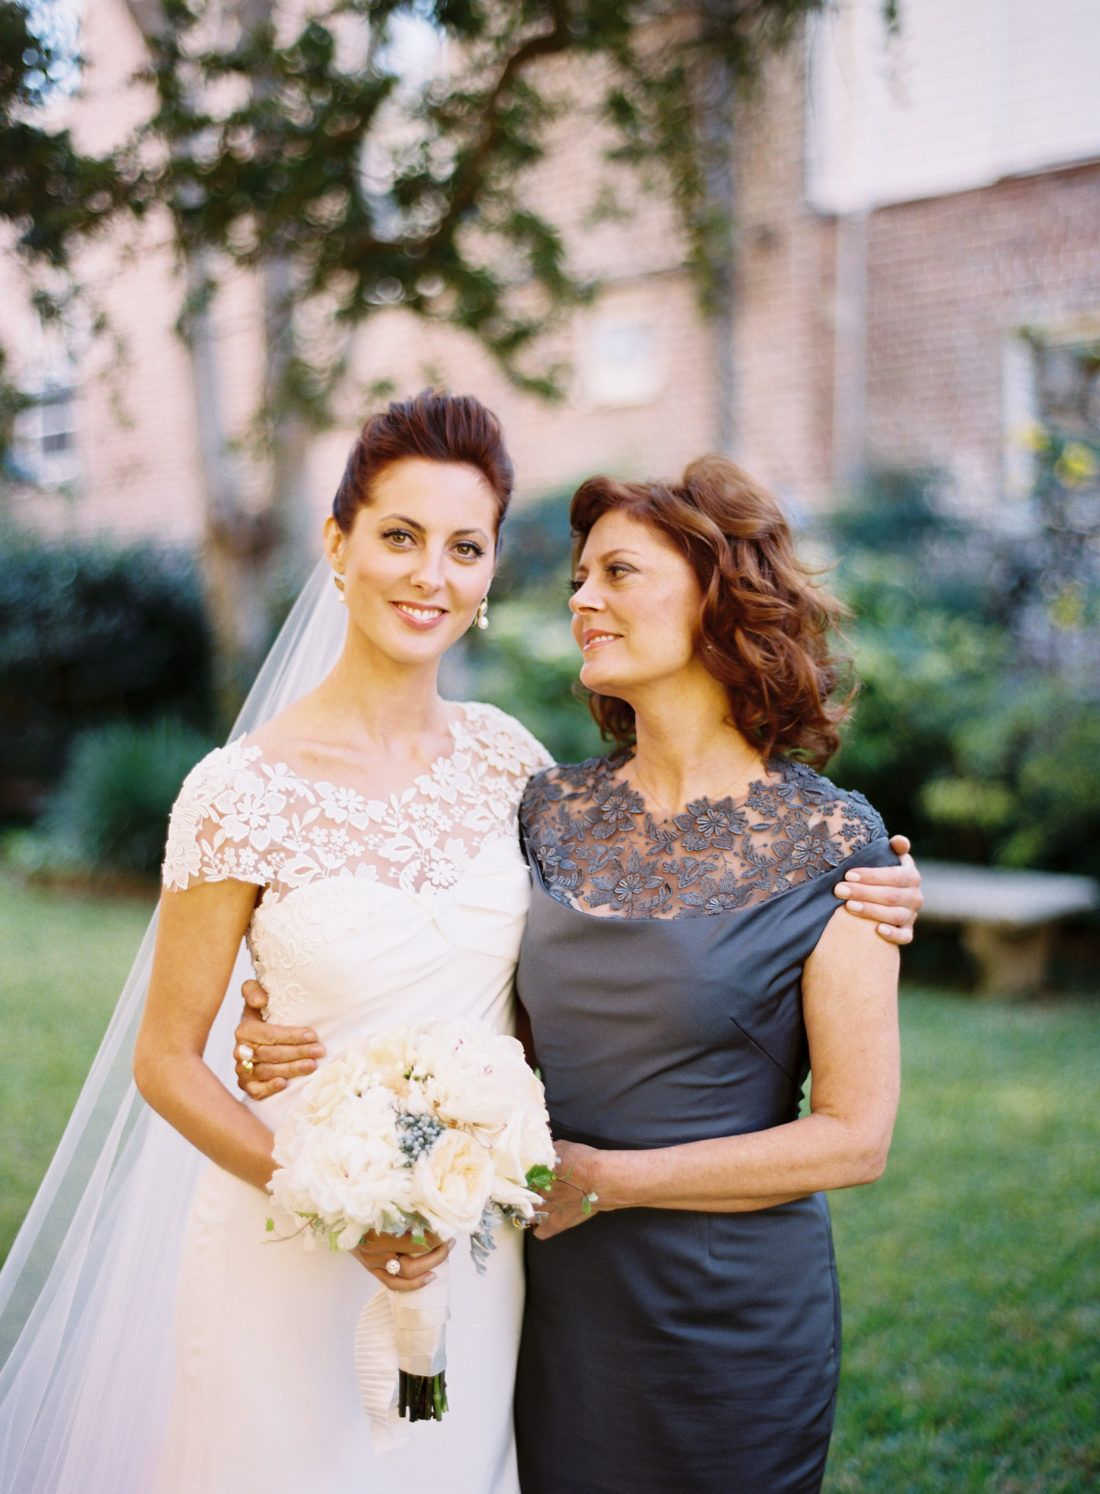 Eva Amurri And Her Mother Susan Sarandon At Charleston Wedding To Kyle Martino